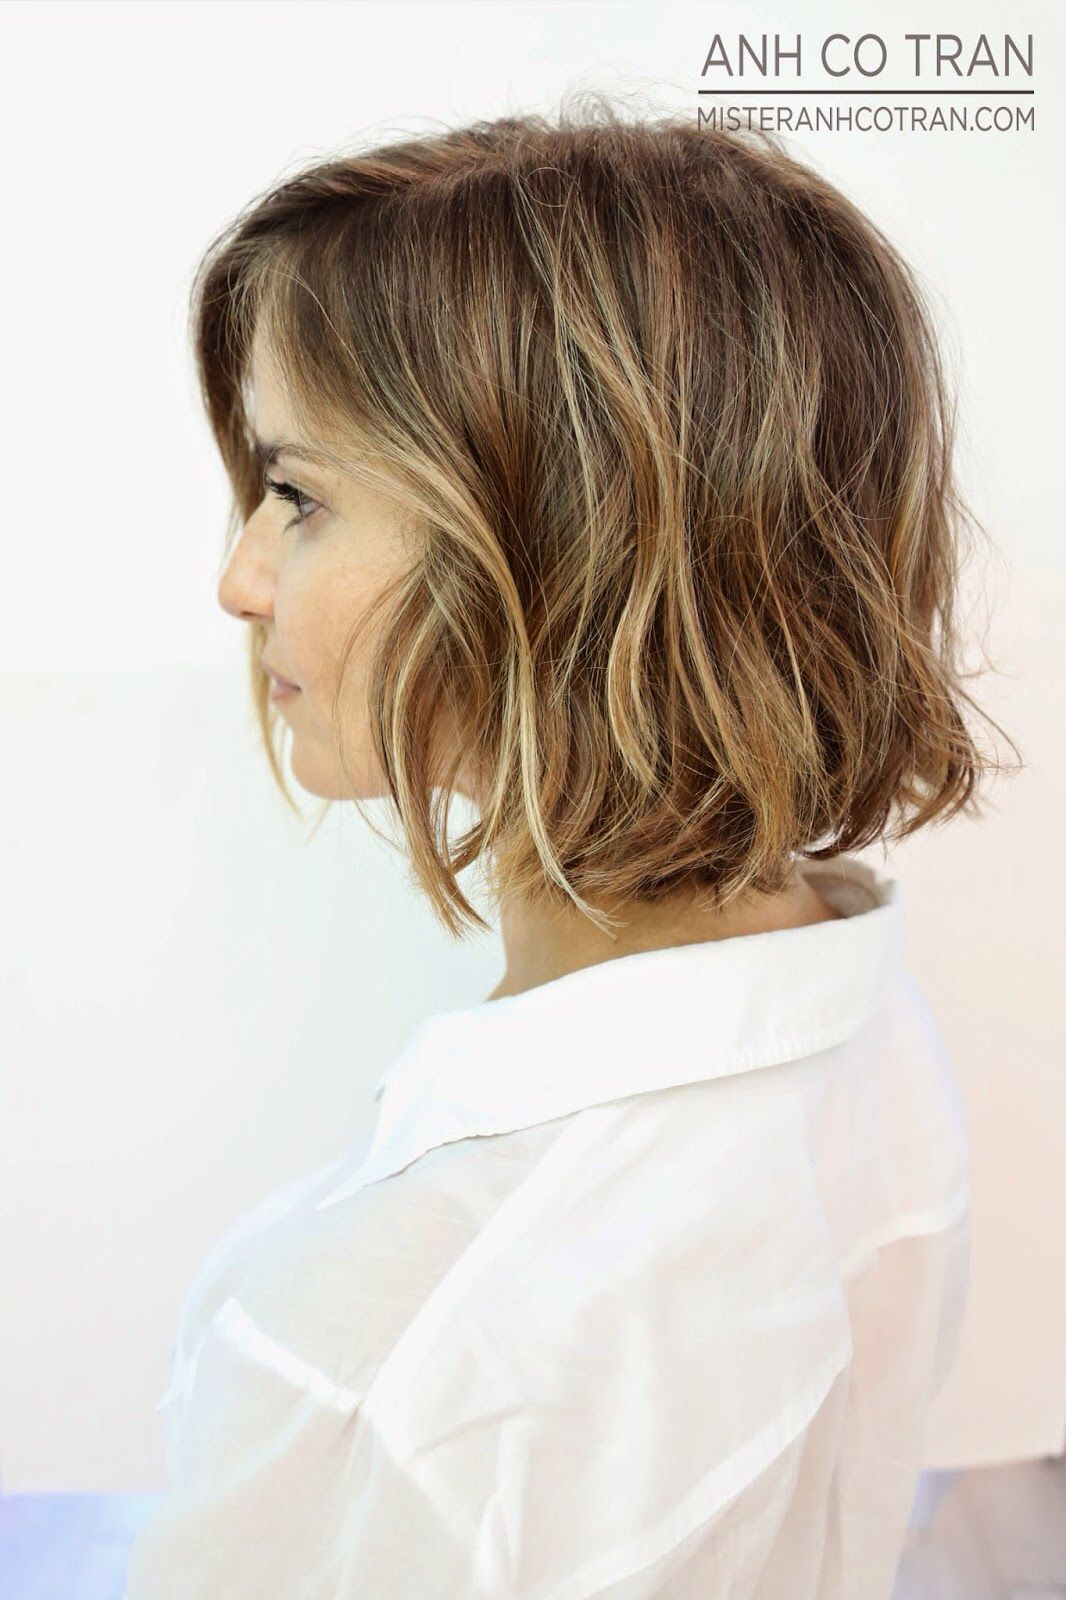 Subtle and pretty corte pinterest hair style haircuts and